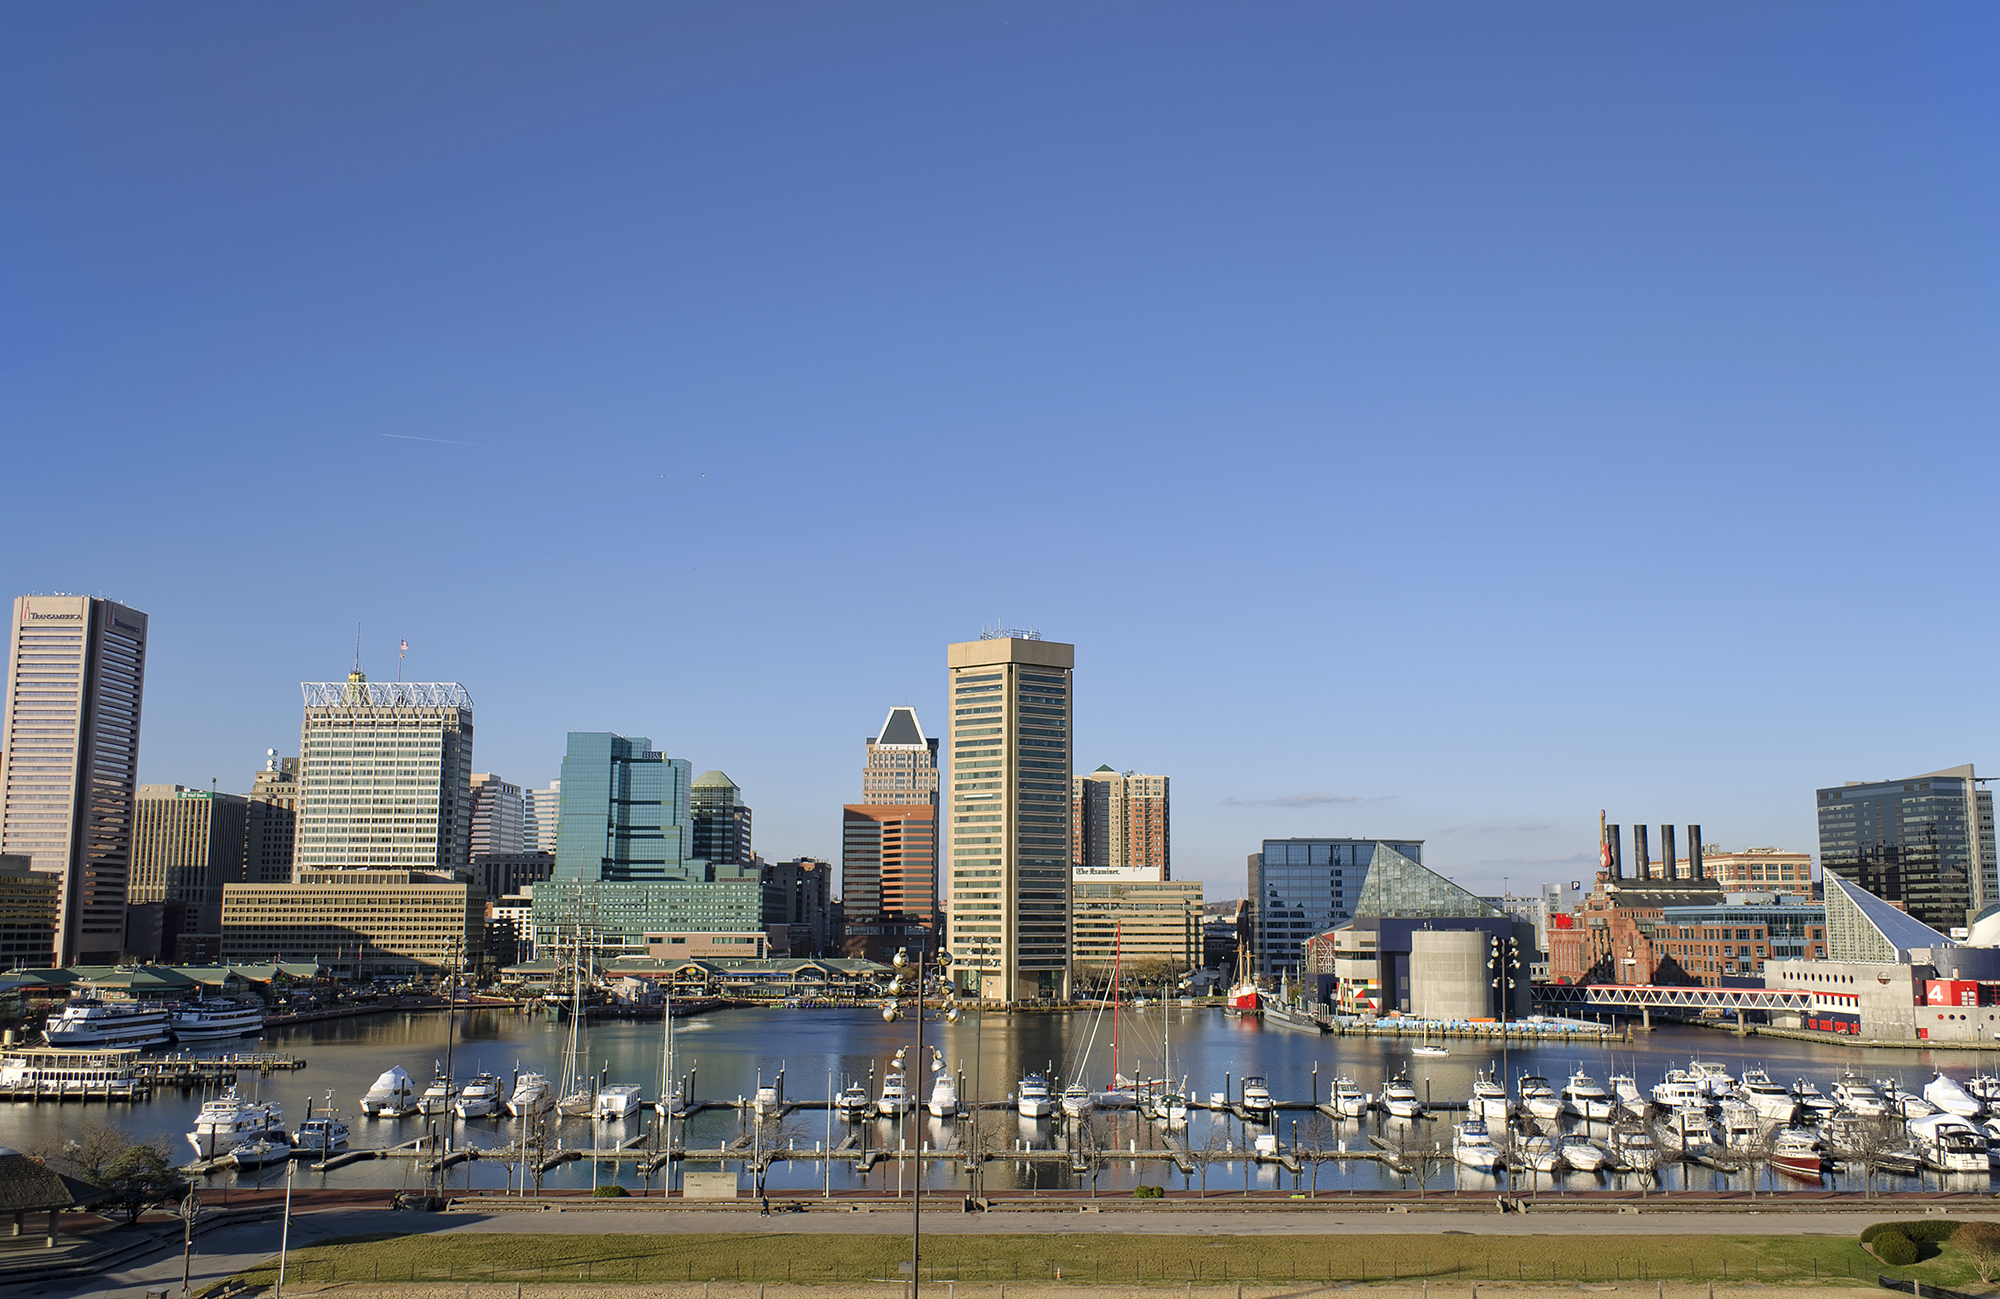 The Inner Harbor of Baltimore, MD.